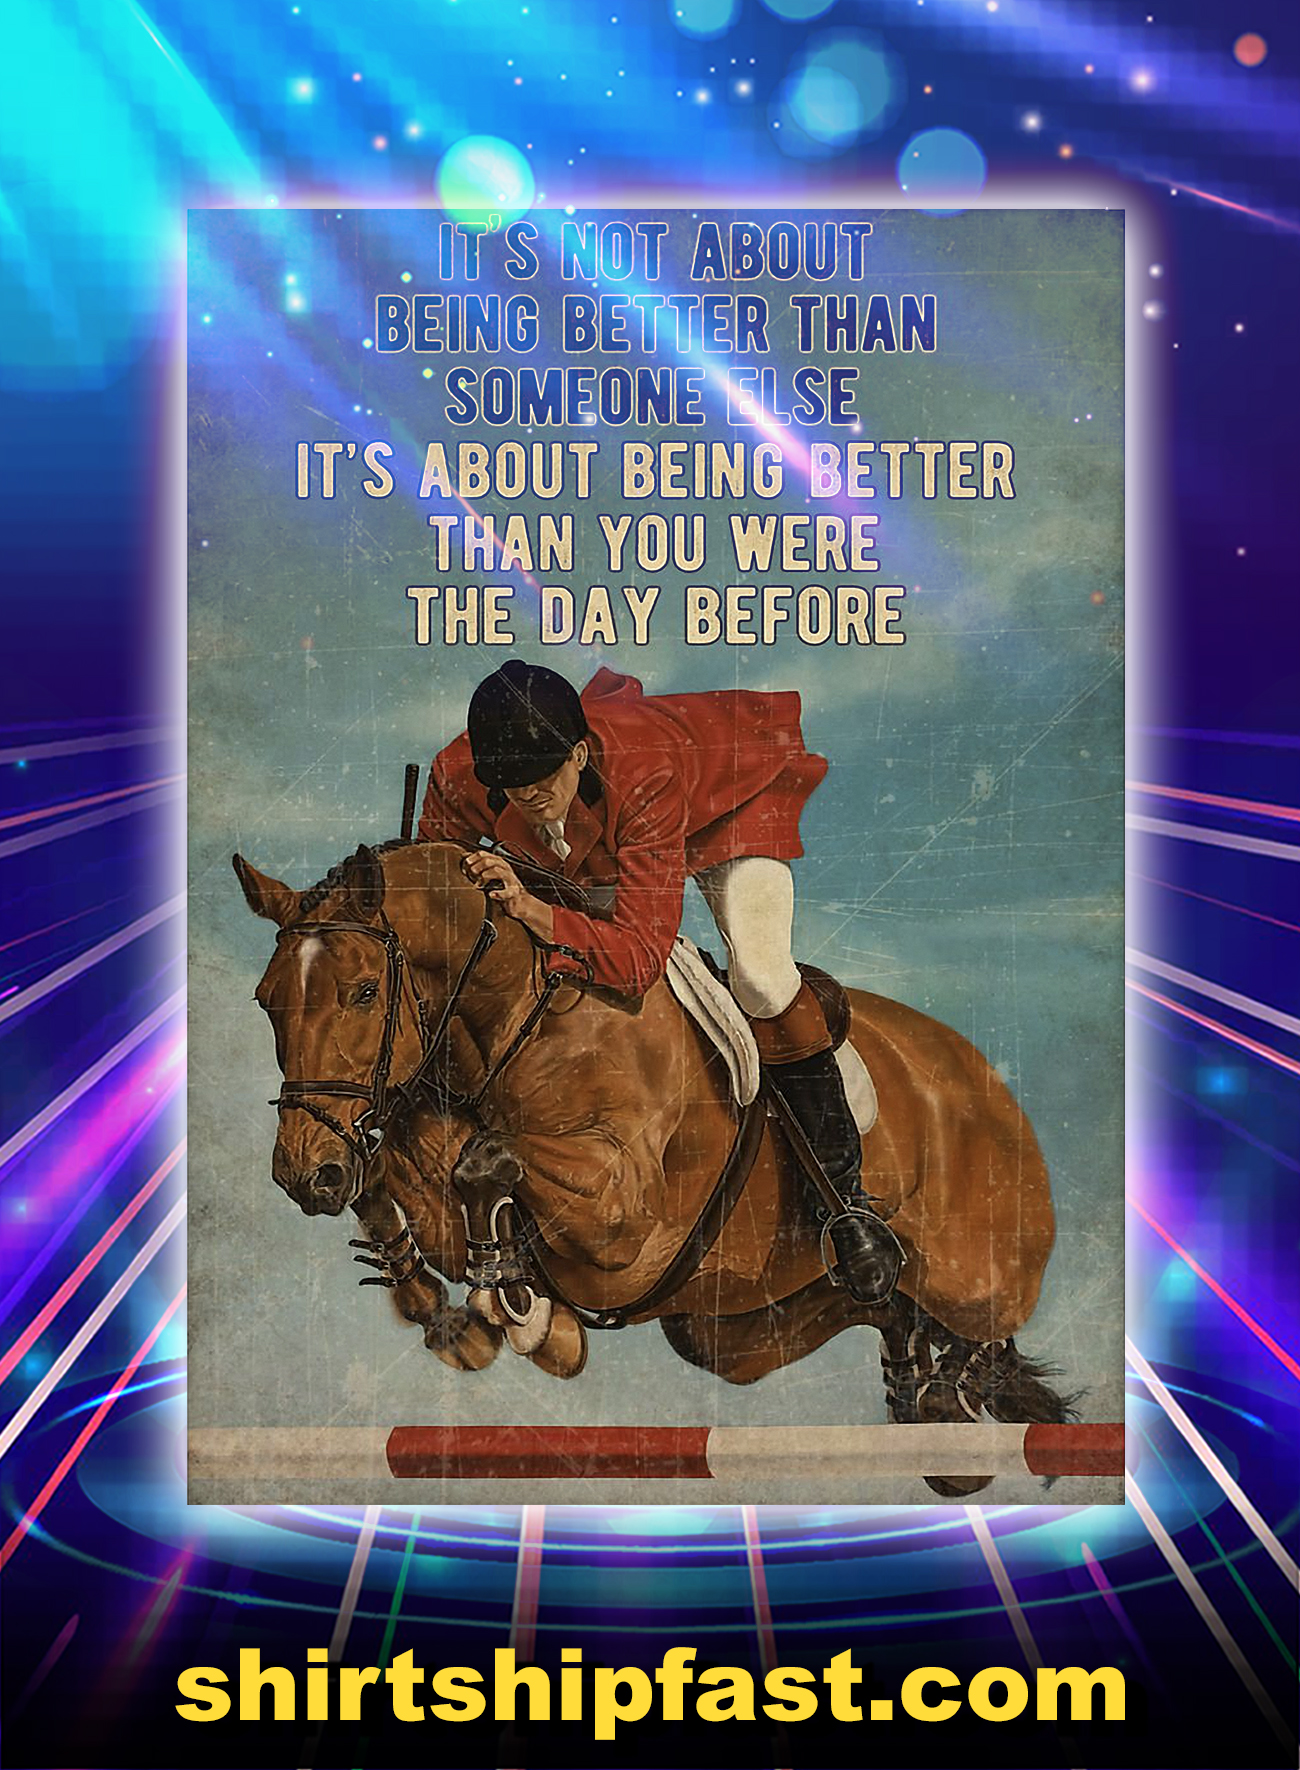 Show jumping It's not about being better than someone else poster - A4